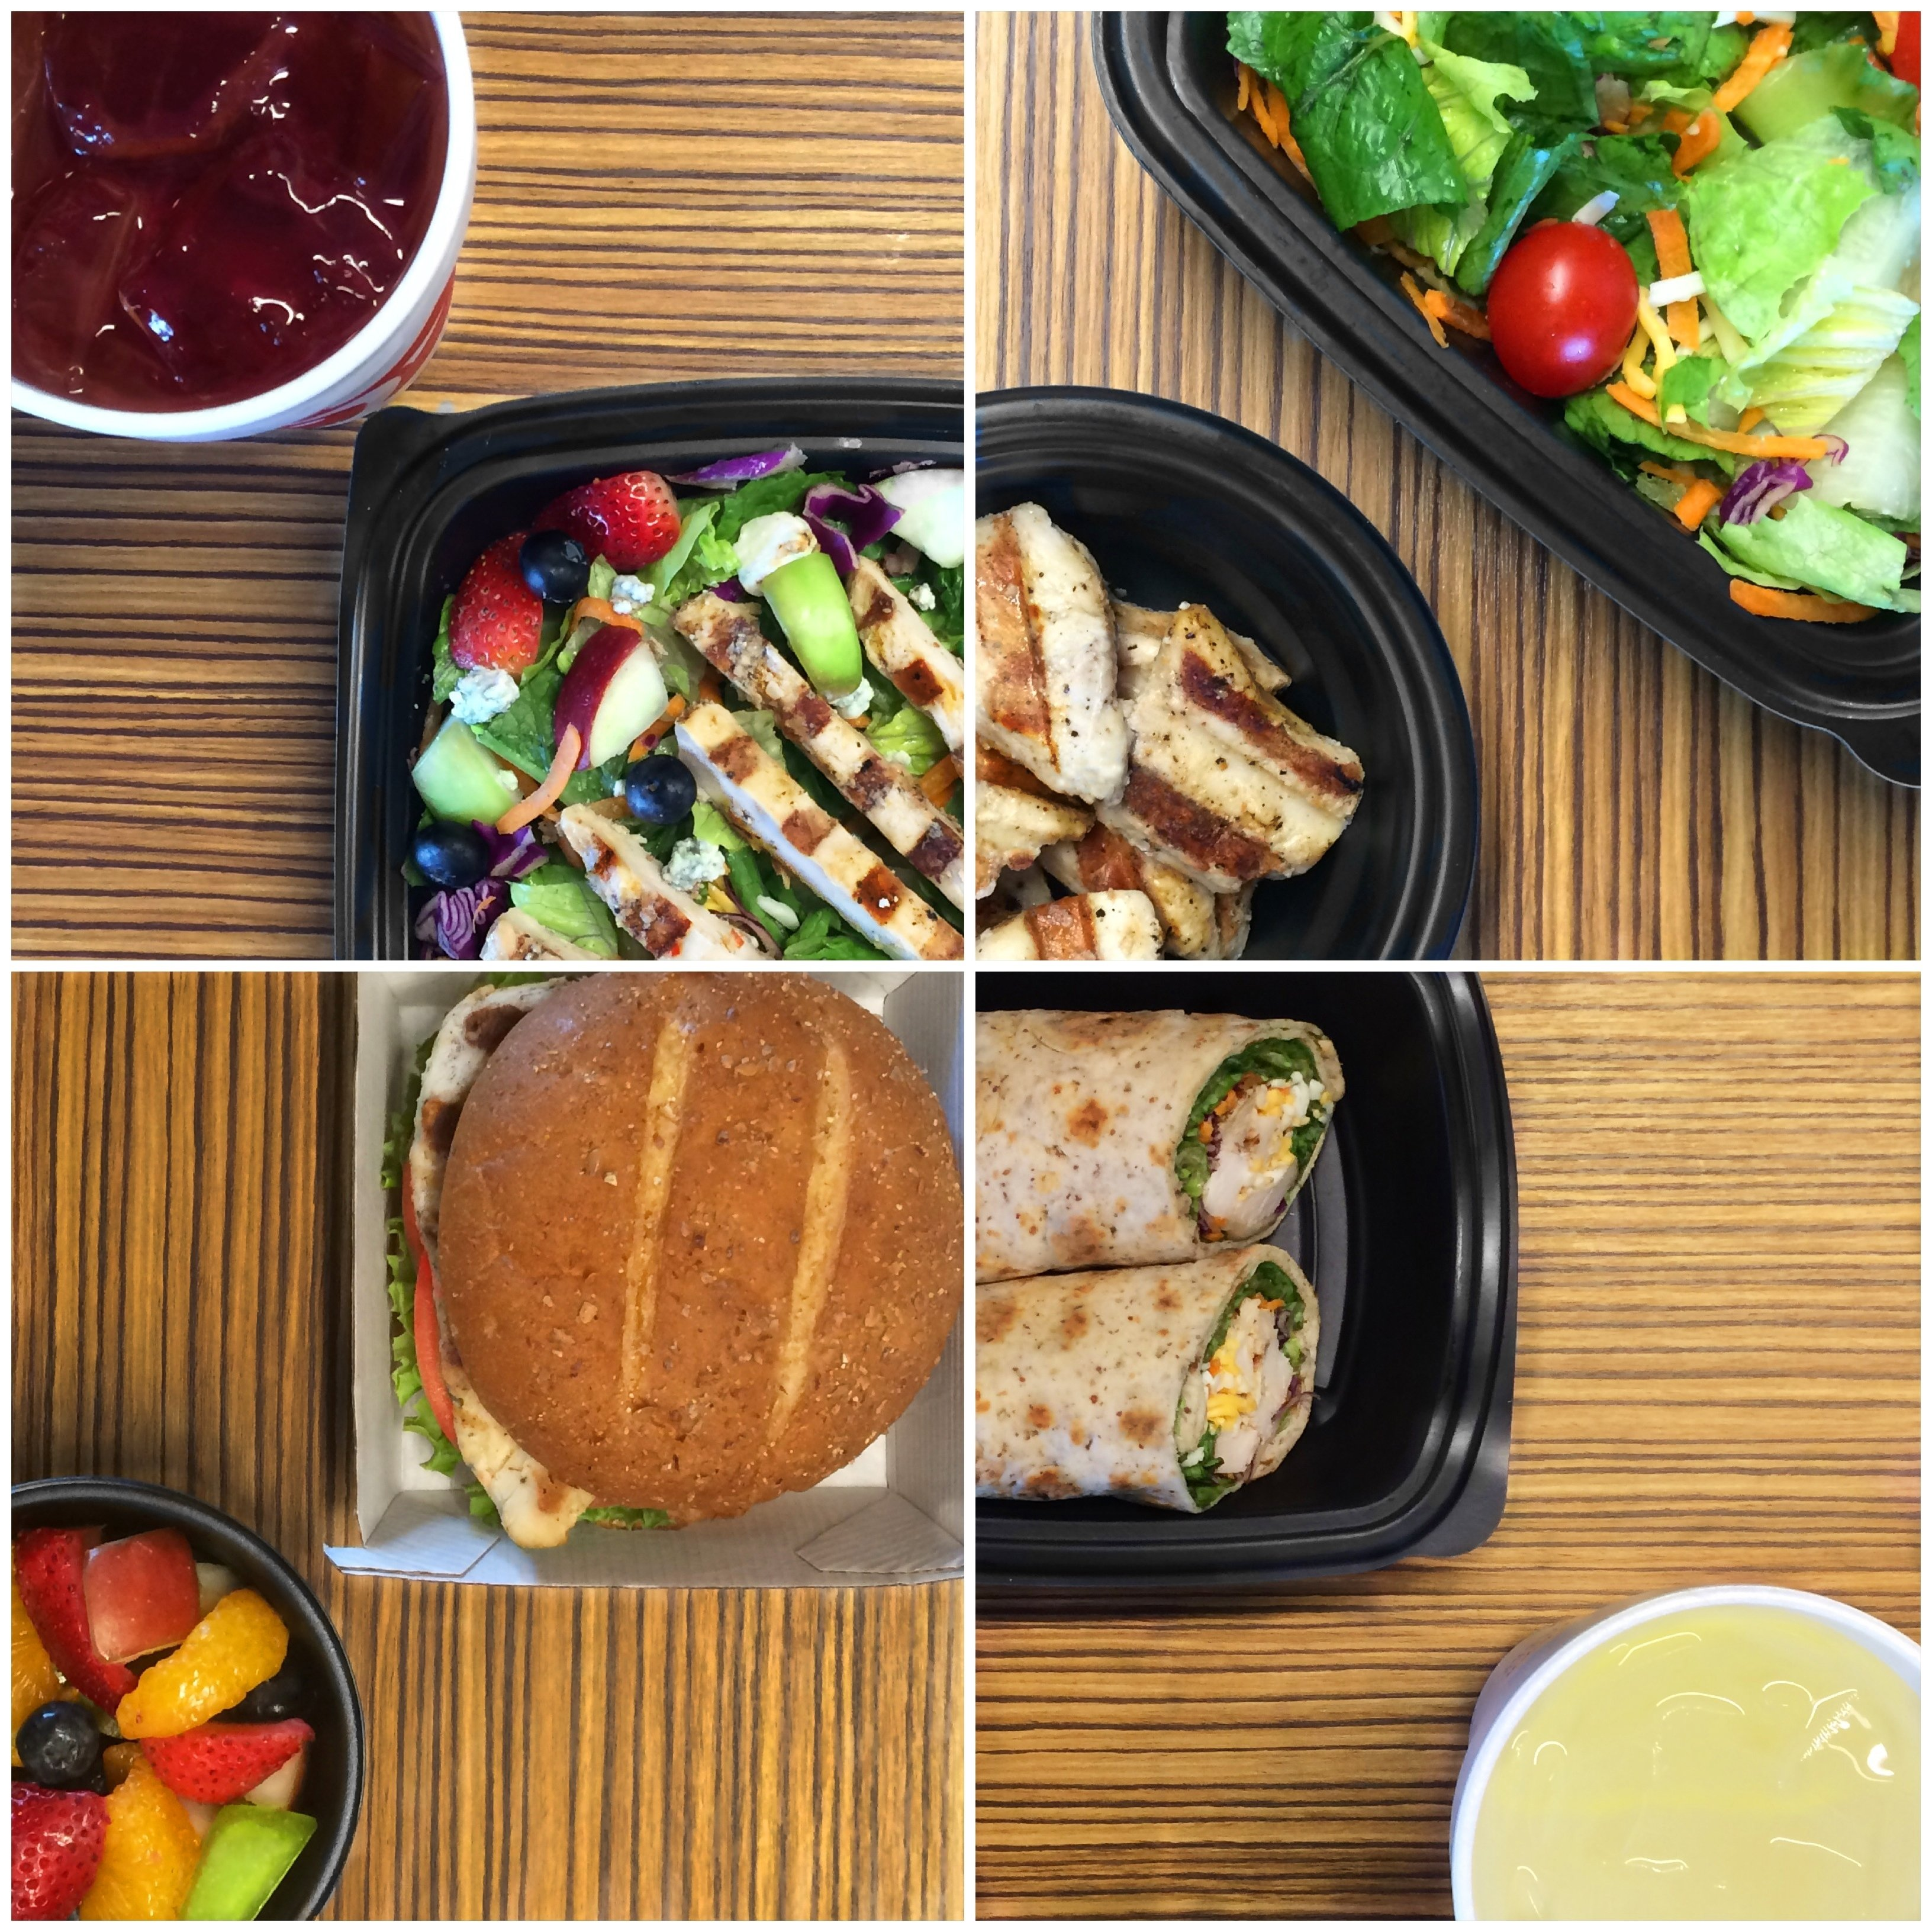 10 Elegant Dinner Ideas Under 500 Calories fast can still be nutritious 10 grilled chicken meals under 500 2020